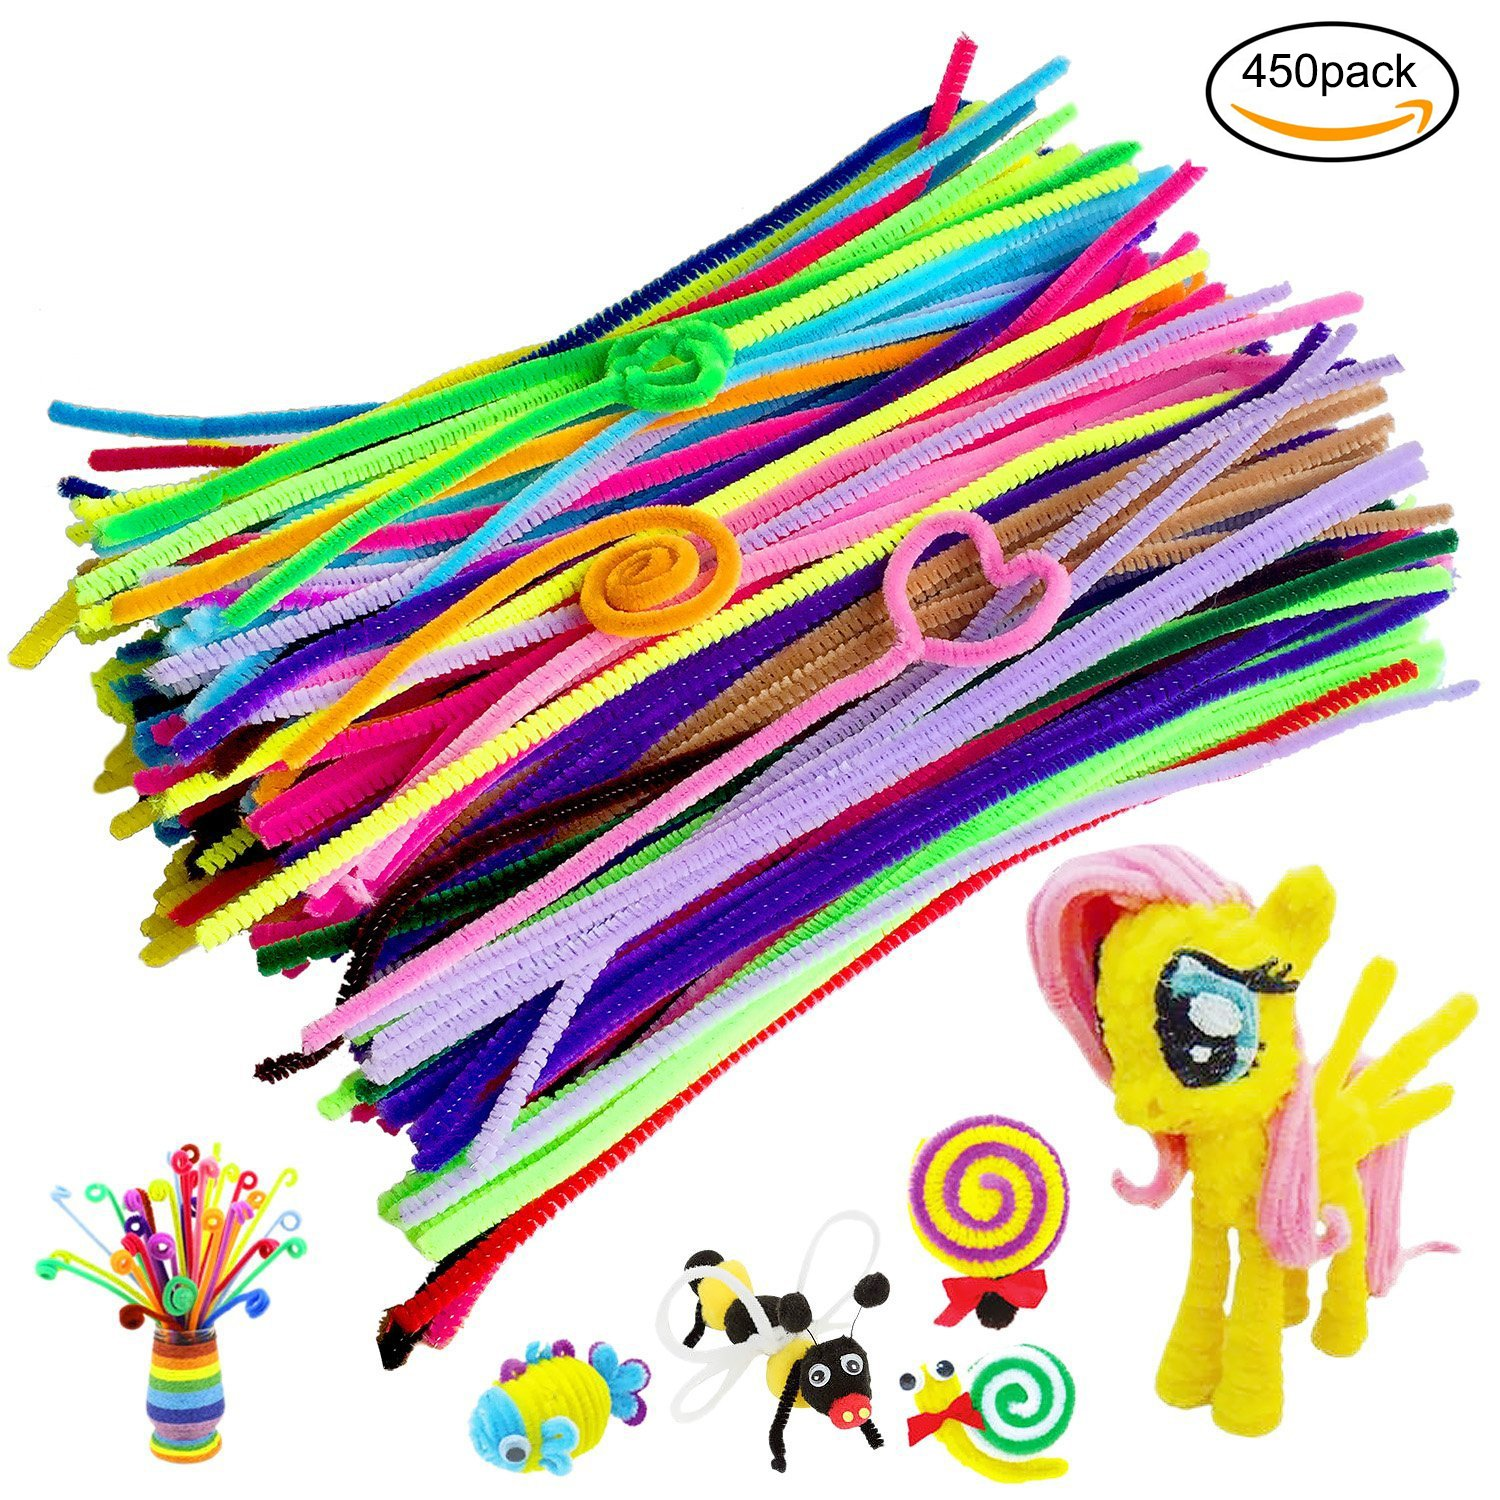 450Pcs Pipe Cleaners Craft Set,Including 100 Pcs Chenille Stems with 200 Pcs Pom Poms Craft and 150 Pcs Wiggle Googly Eyes Self Adhesive,Assorted Colors and Assorted Sizes for DIY Art Craft